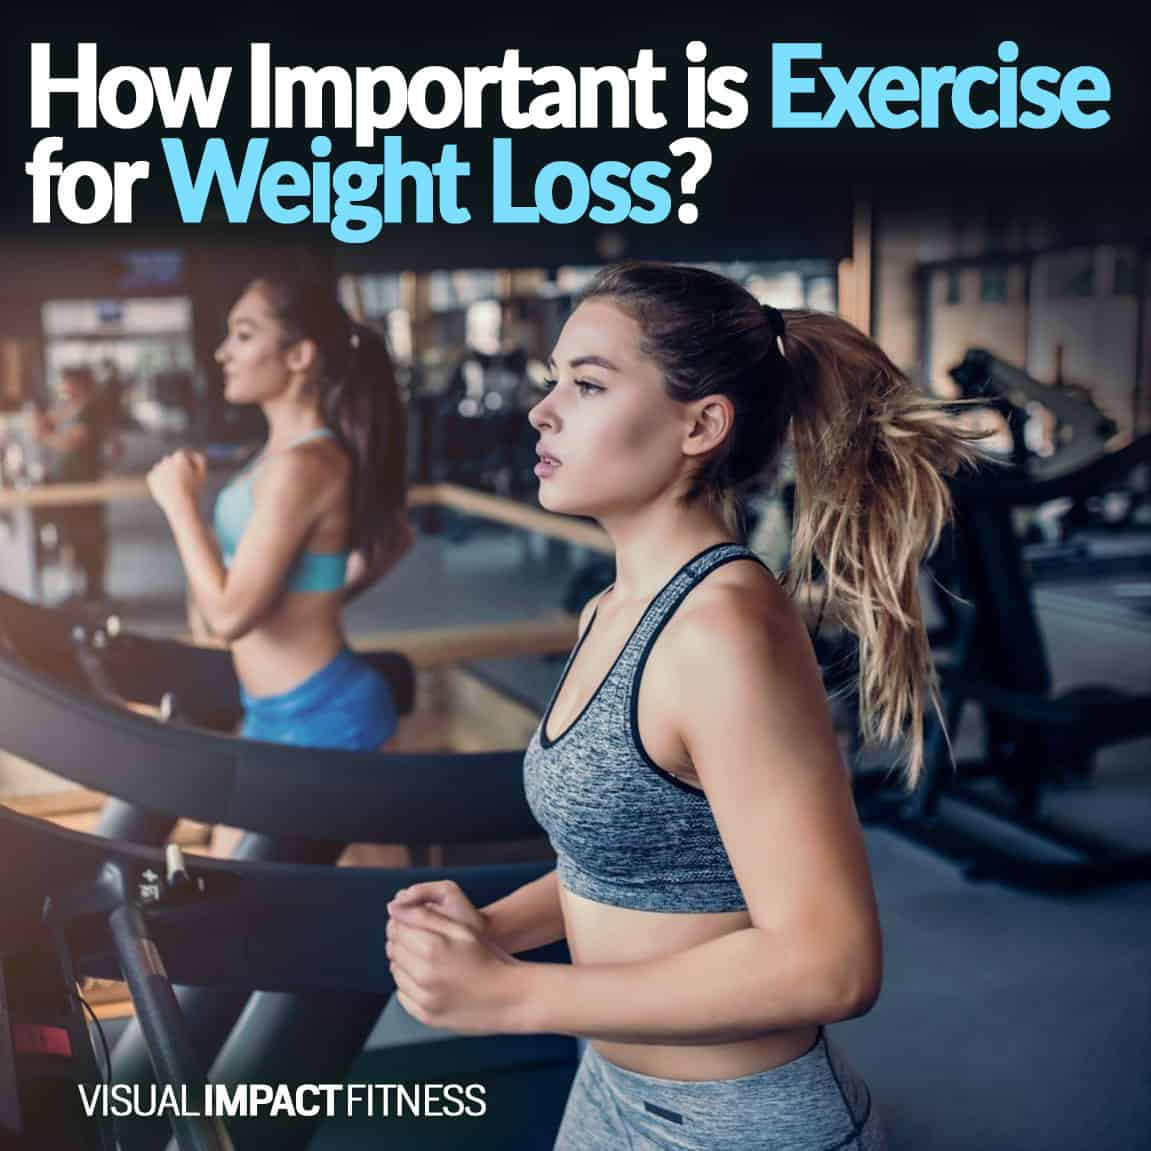 How Important is Exercise for Weight Loss?